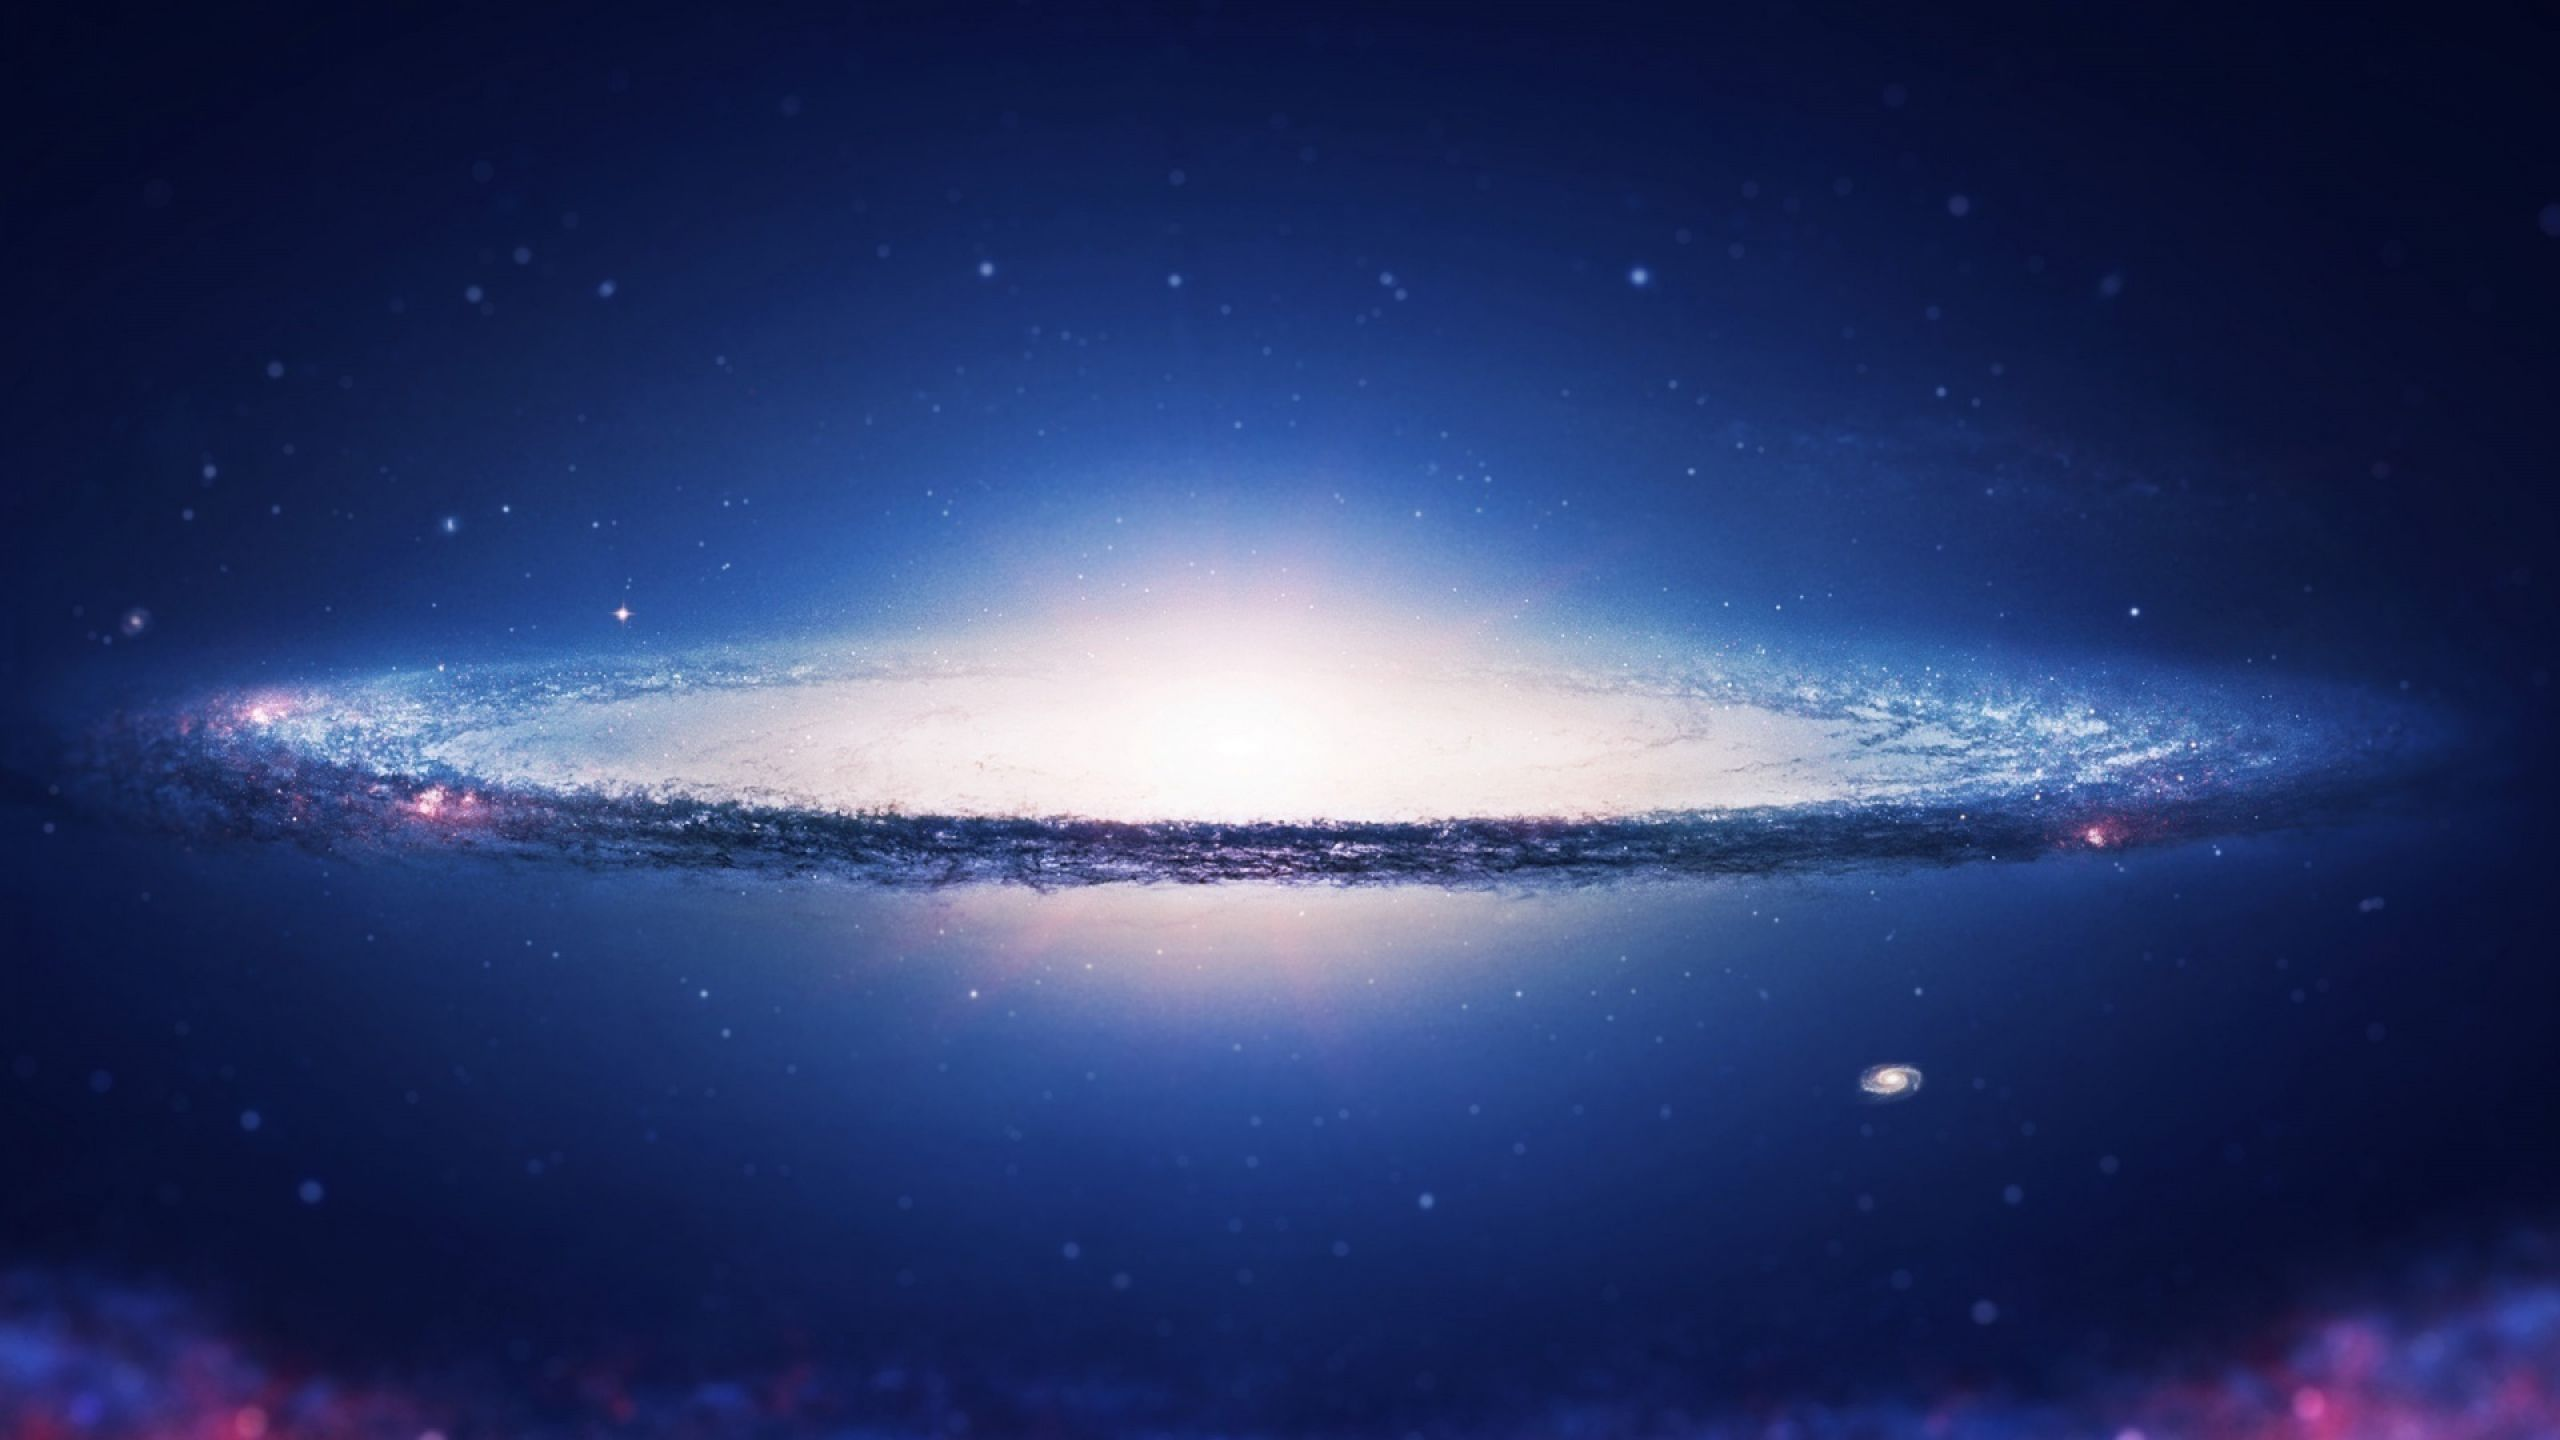 Download Wallpaper 2560x1440 Space, Sky, Spiral, Galaxy